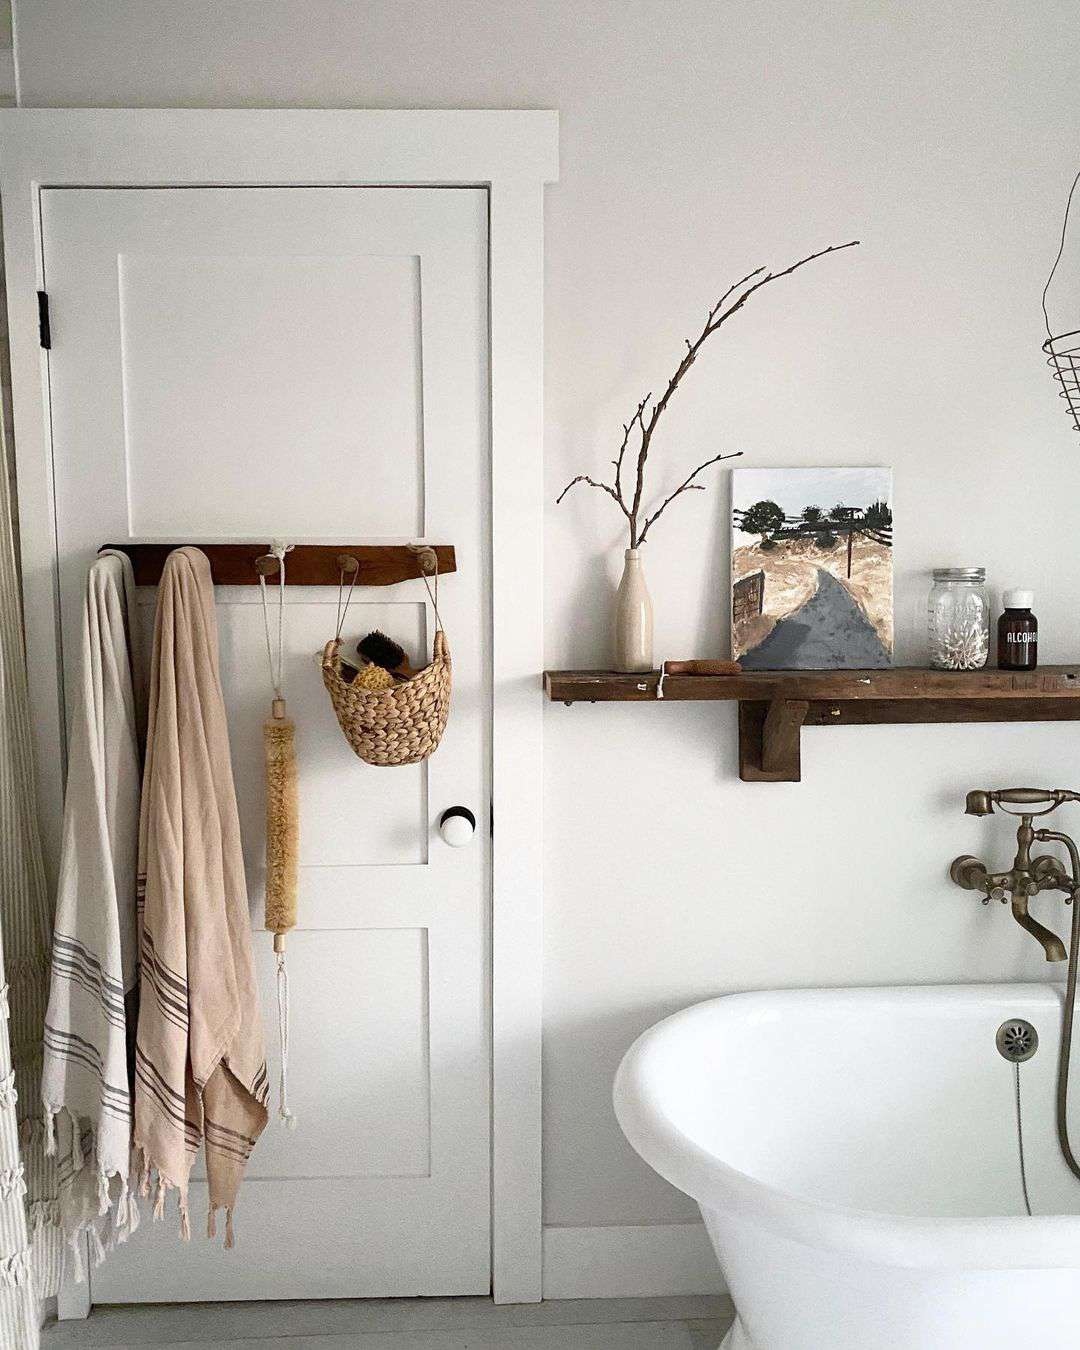 freestanding tub with shelf above and historic door nearby